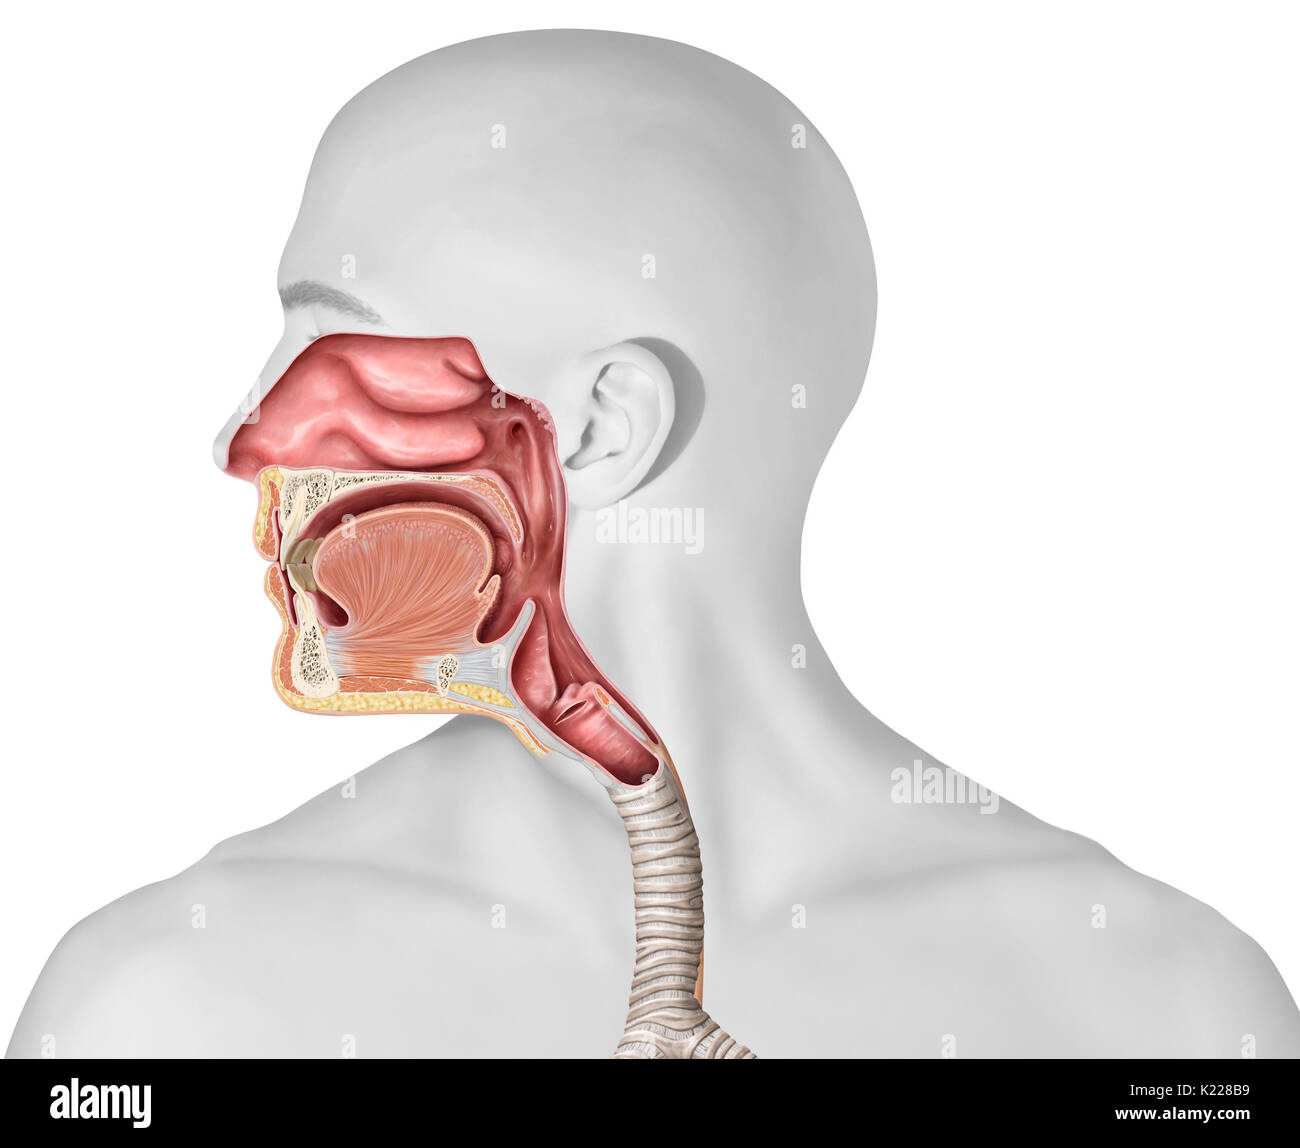 Nasal Cavity Stockfotos & Nasal Cavity Bilder - Alamy